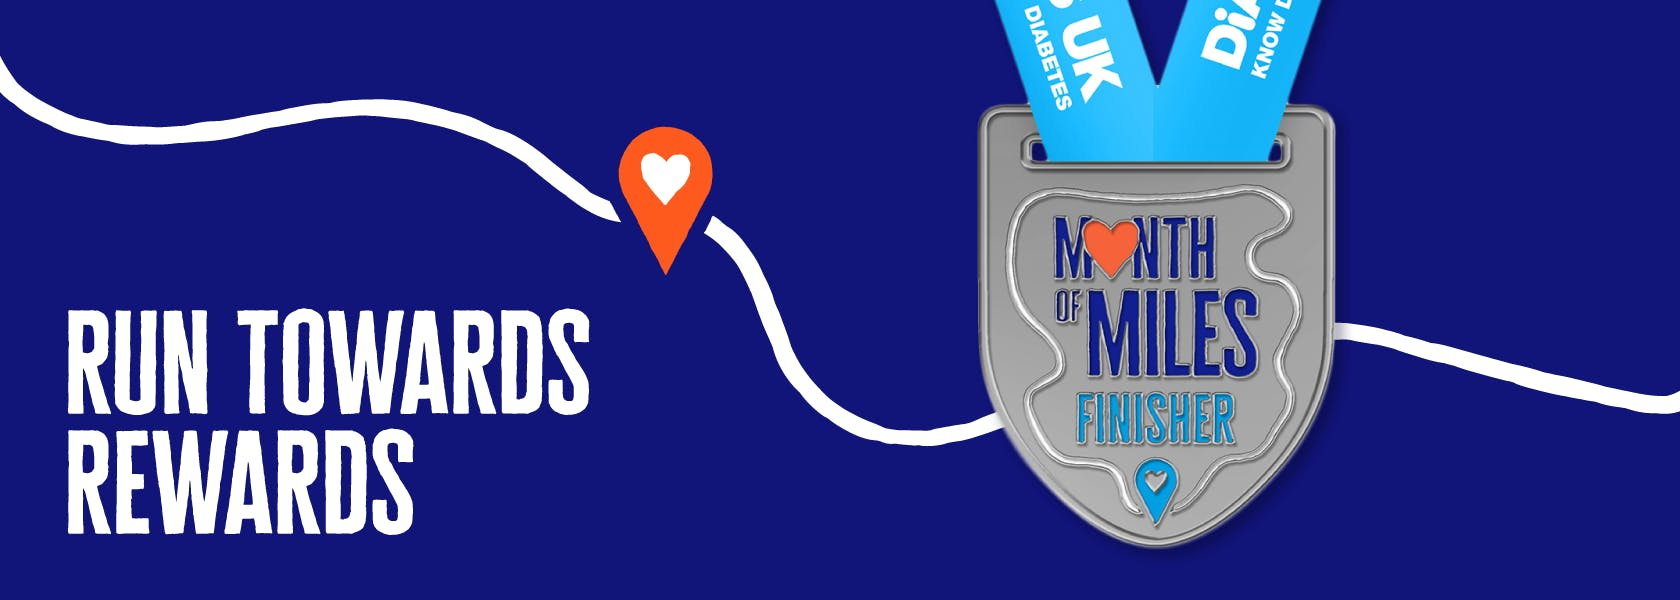 Collect your Month of Miles finisher medal as you complete your Diabetes UK running challenge